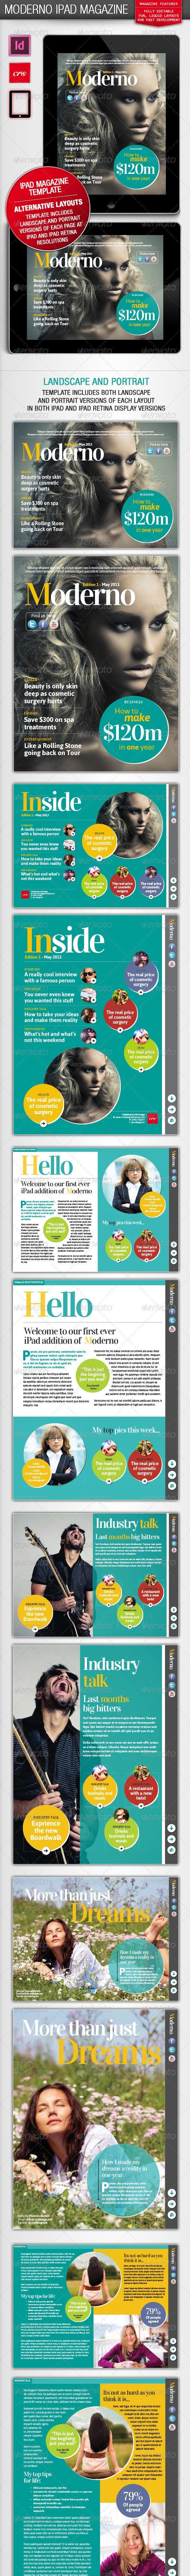 Moderno iPad Magazine - Digital Magazines ePublishing